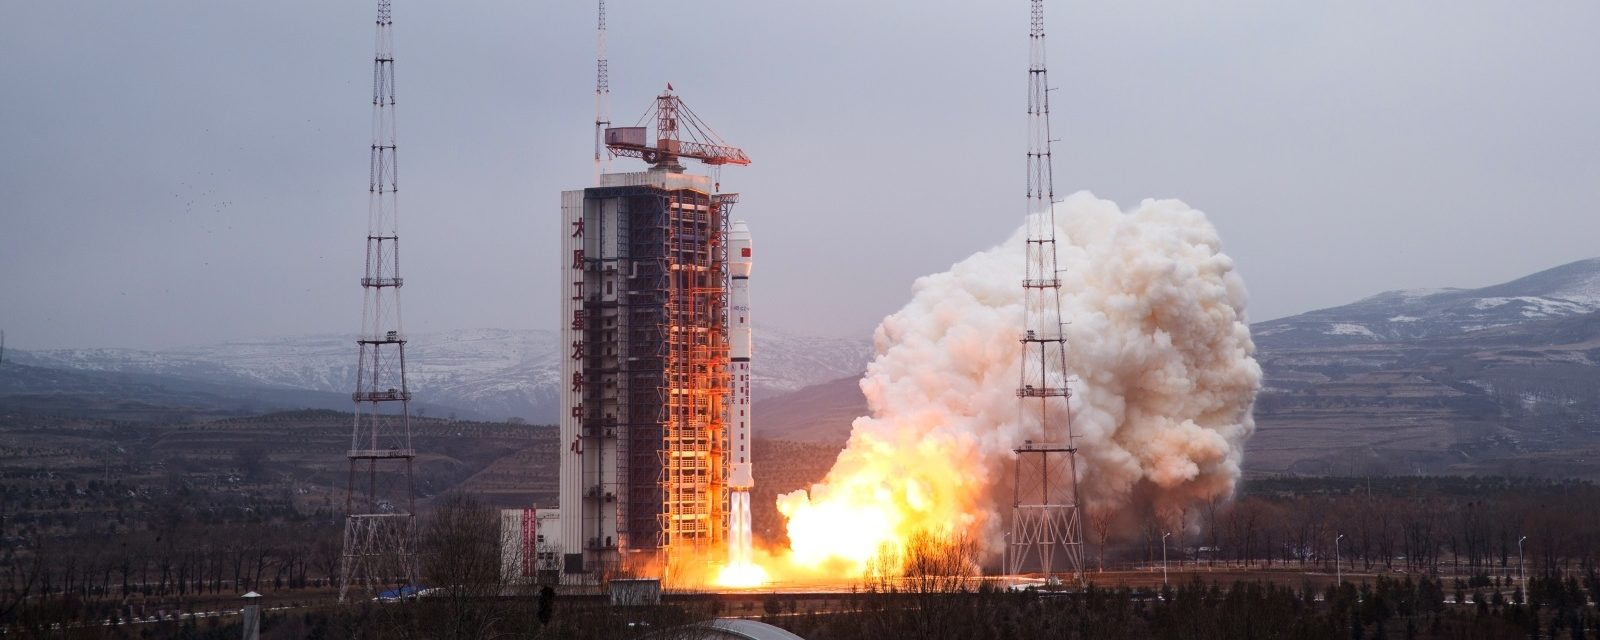 A Long March 4B rocket carrying the Yaogan 28 satellite blasts off from the Taiyuan Satellite Launch Center on Nov. 8, 2015.